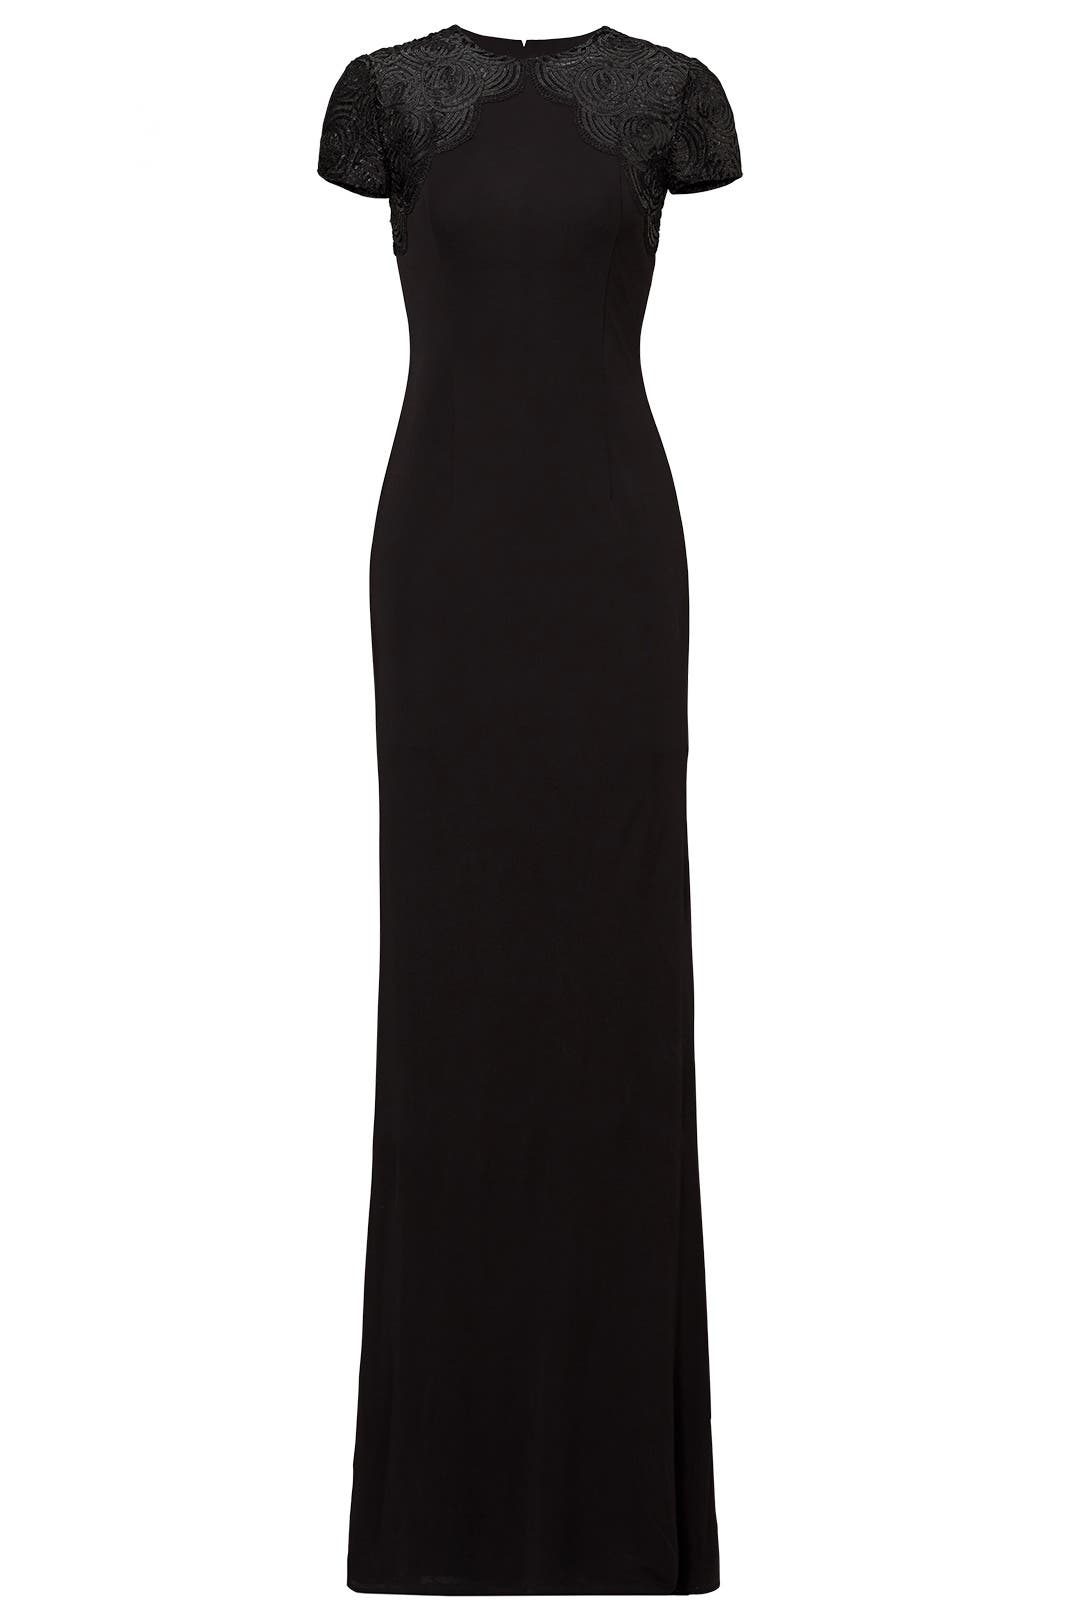 Black Rosette Yoke Gown by David Meister for $186 | Rent the Runway